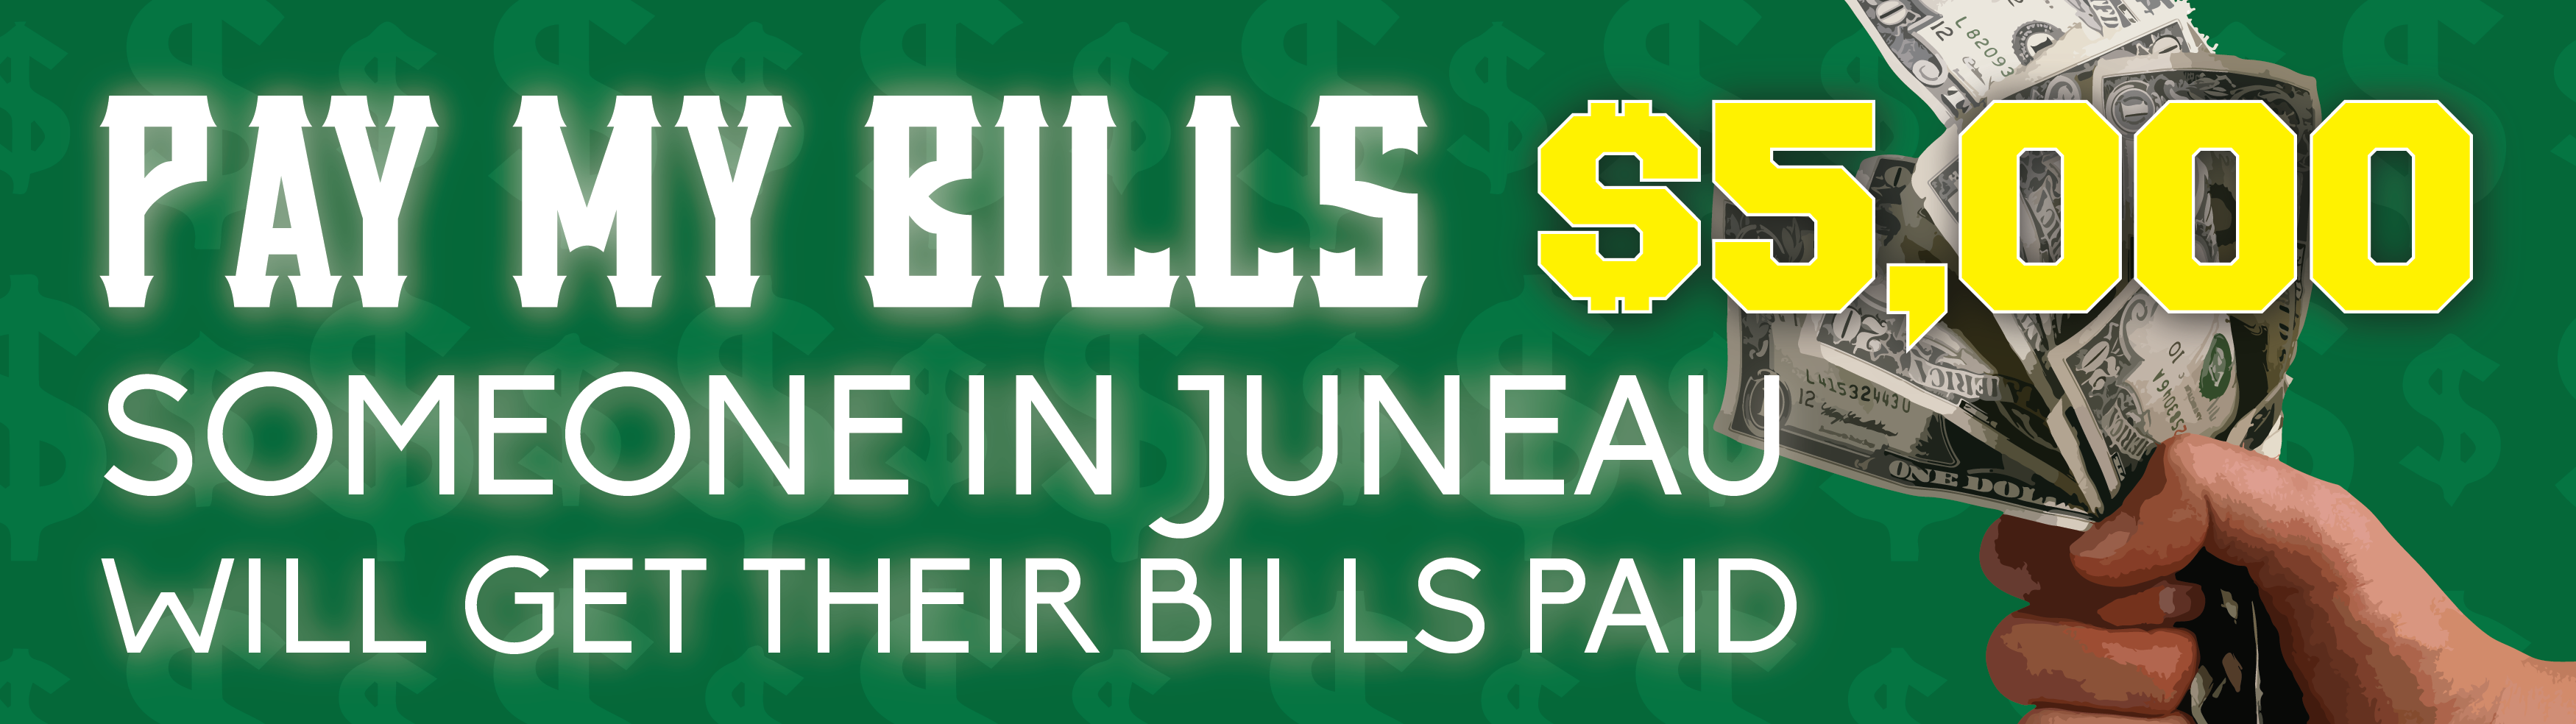 Pay My Bills - Juneau